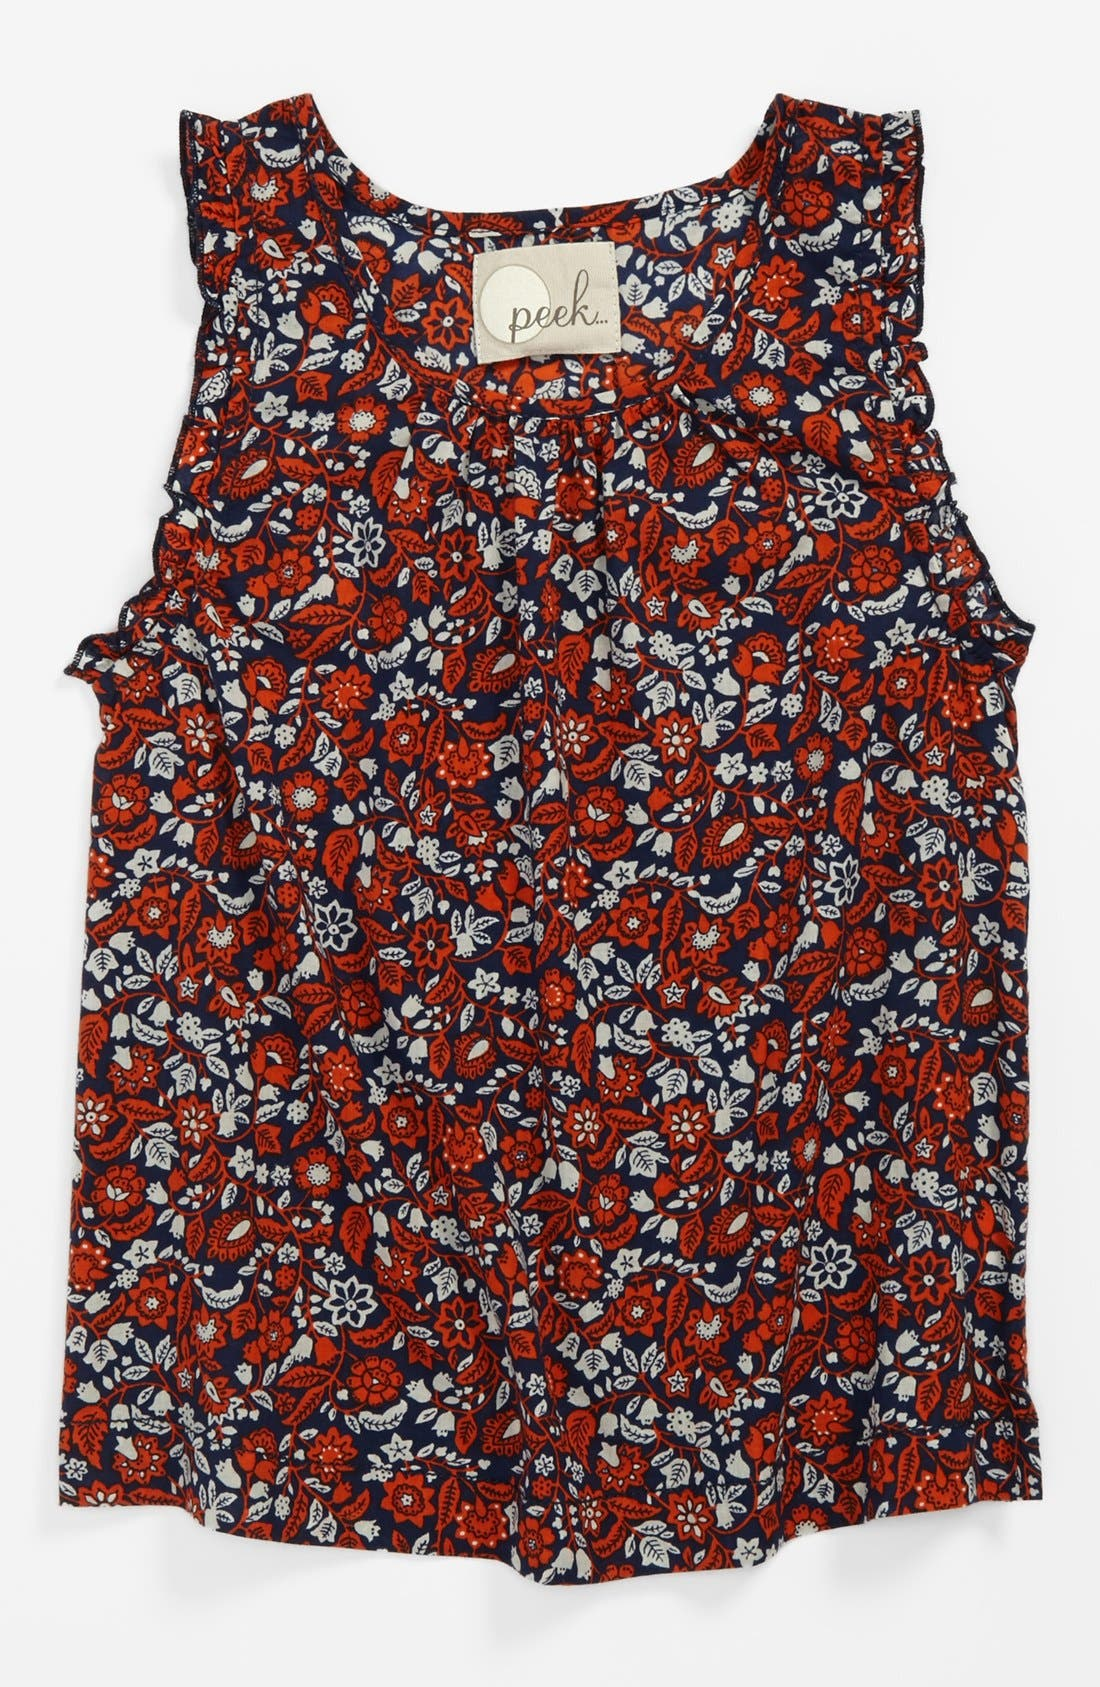 Alternate Image 1 Selected - Peek 'Liberty' Top (Toddler Girls, Little Girls & Big Girls)